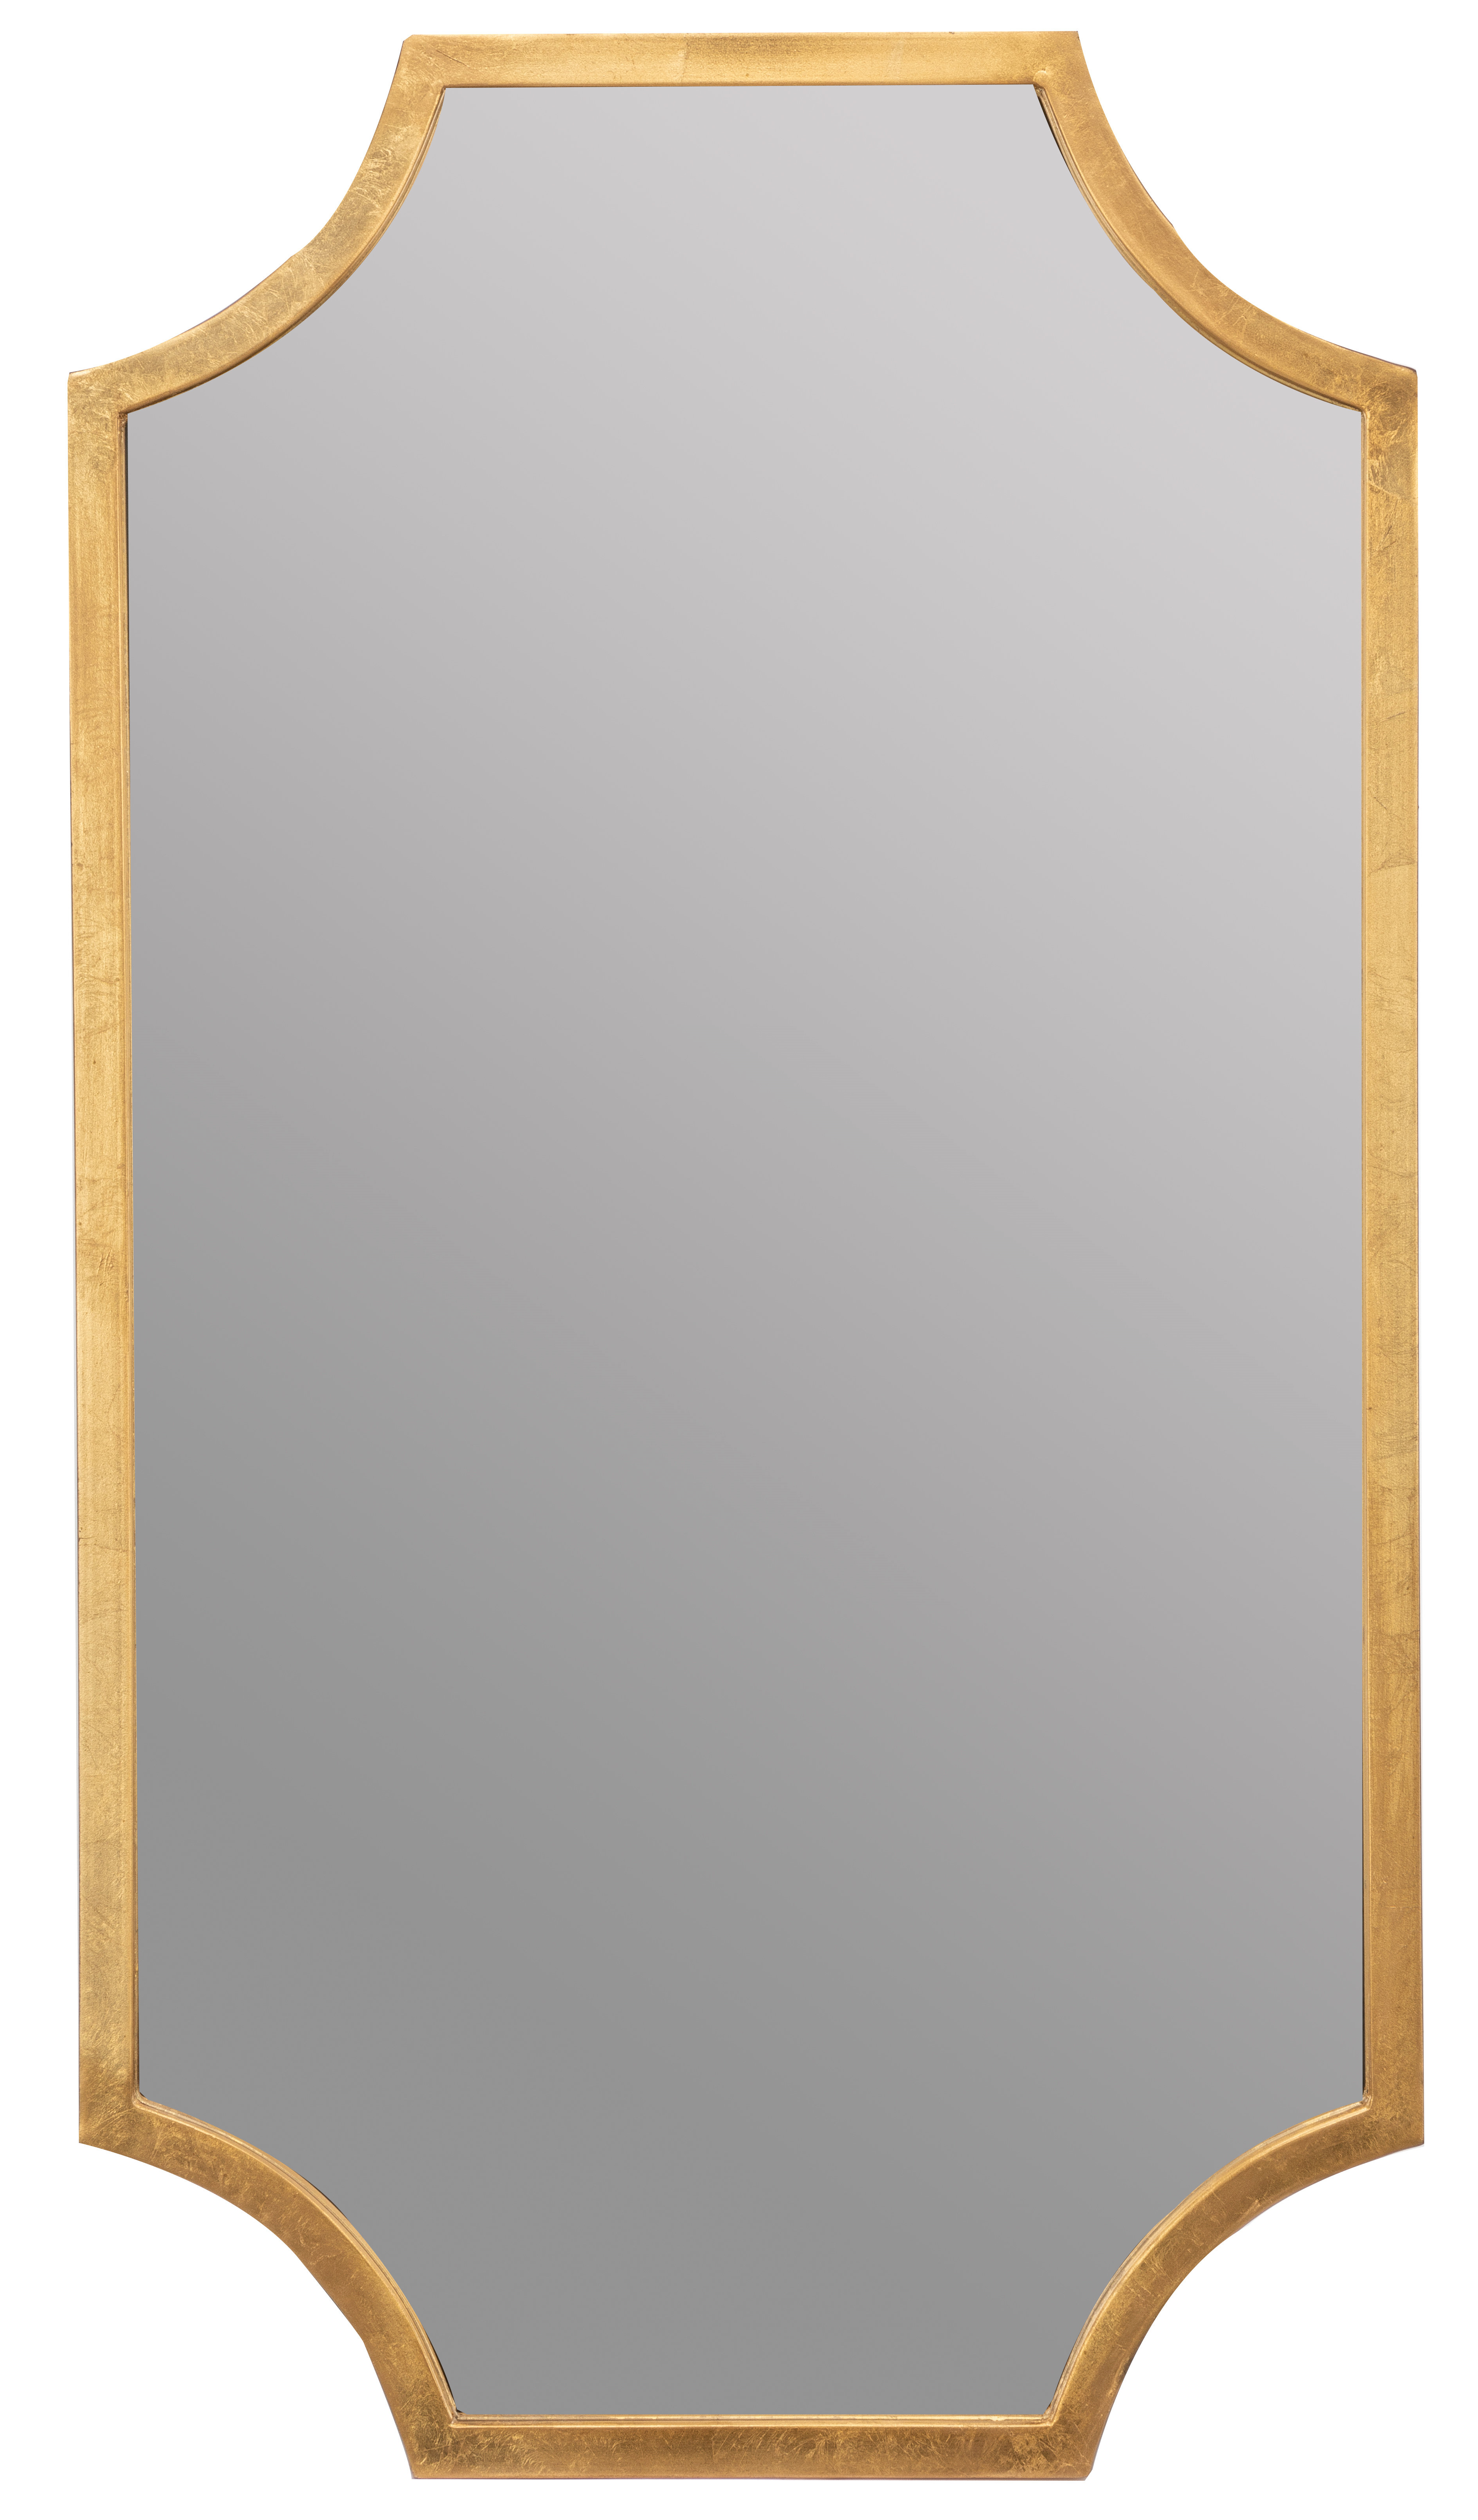 Guidinha Modern & Contemporary Accent Mirrors Pertaining To Famous Schroeders Accent Mirror (View 18 of 20)